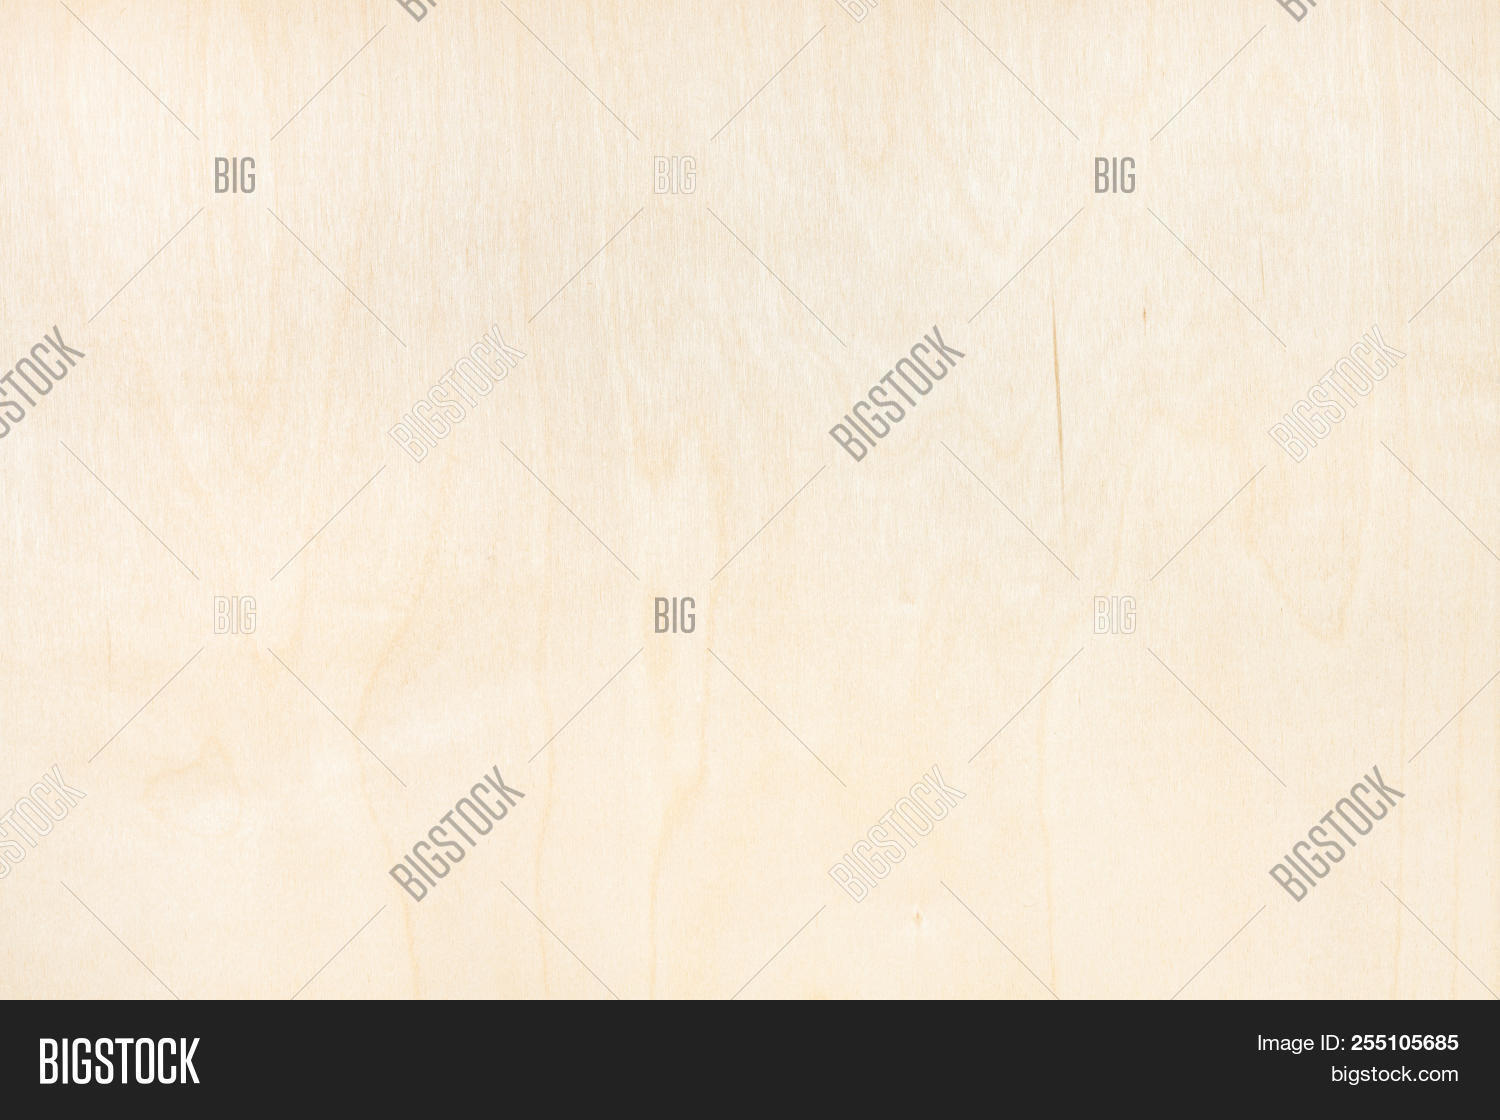 background,birch,blank,board,clean,empty,natural,pattern,plank,plate,plywood,screen,sheet,surface,table,texture,veneer,wood,wooden,yellow